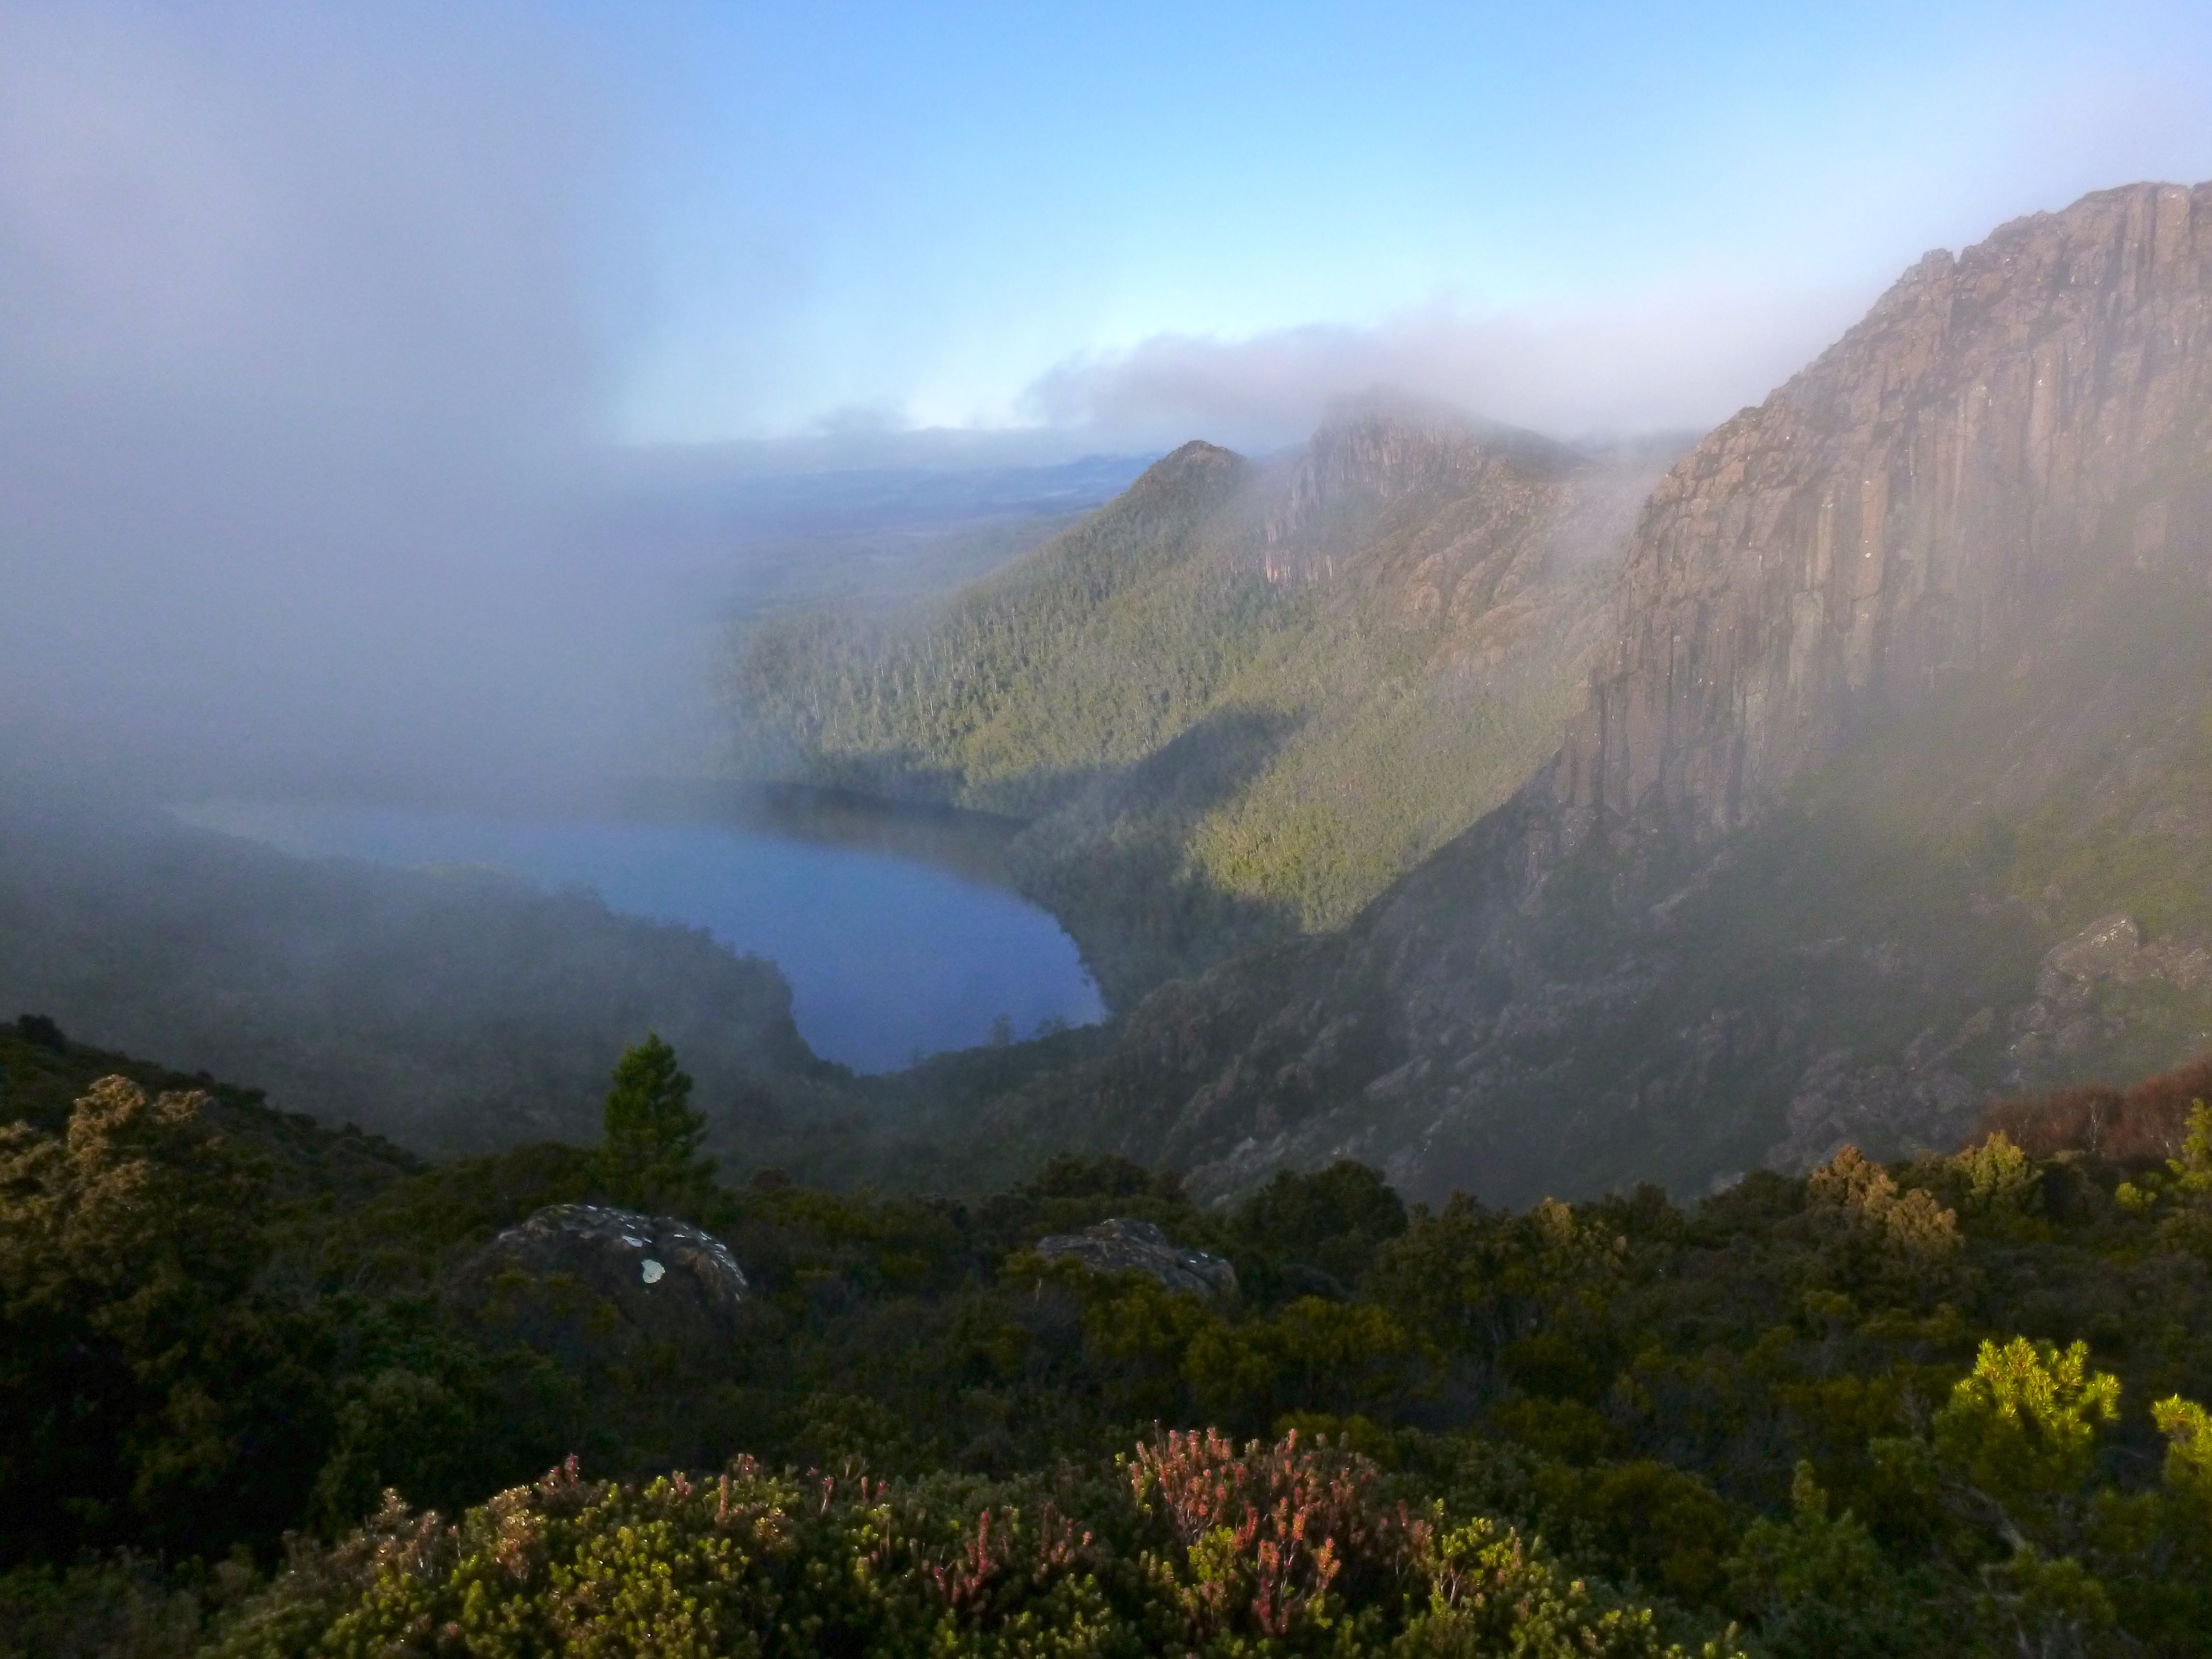 Shortly after heading out, the mist swirls around us, and we get pockets of views.